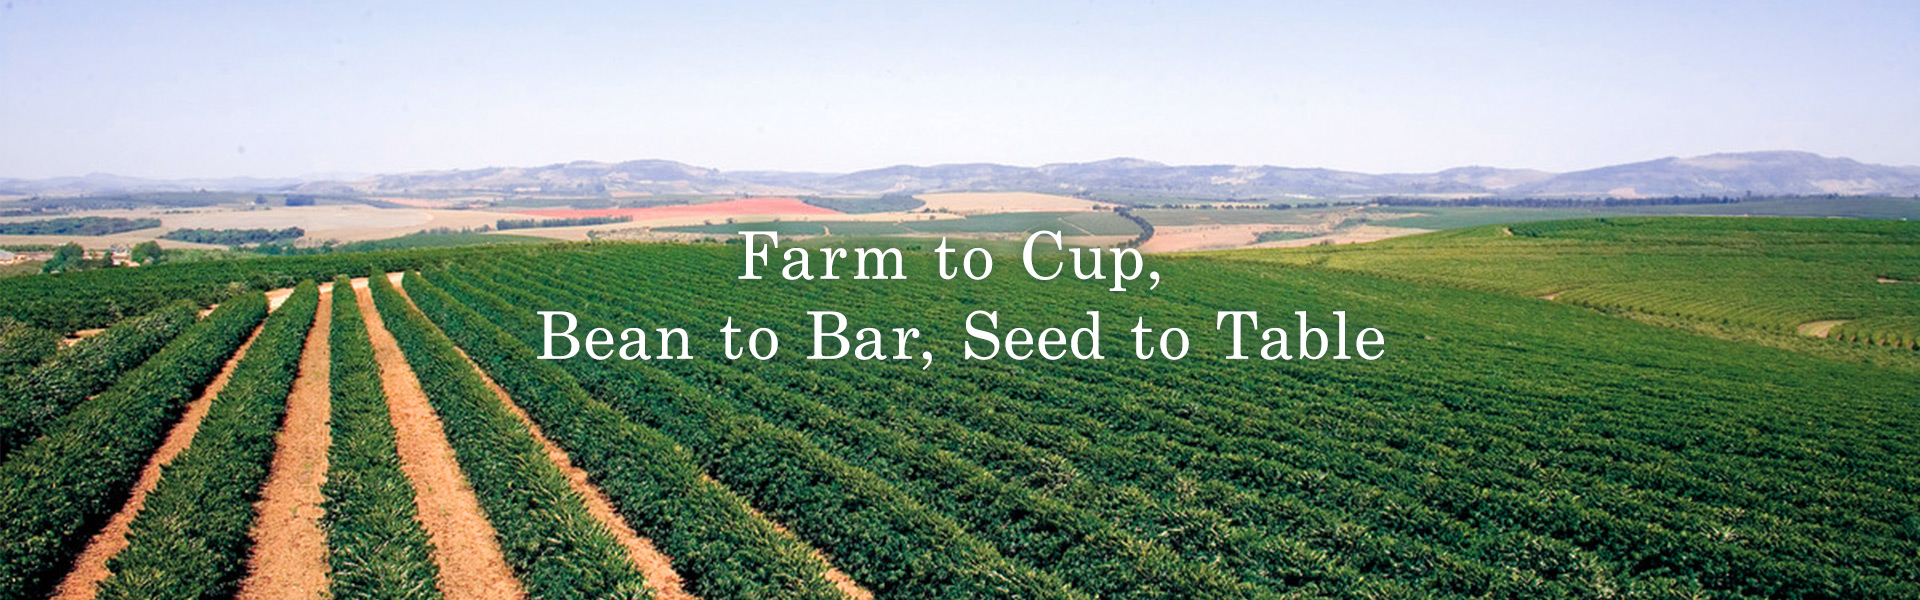 Farm to Cup,Bean to Bar, Seed to Table